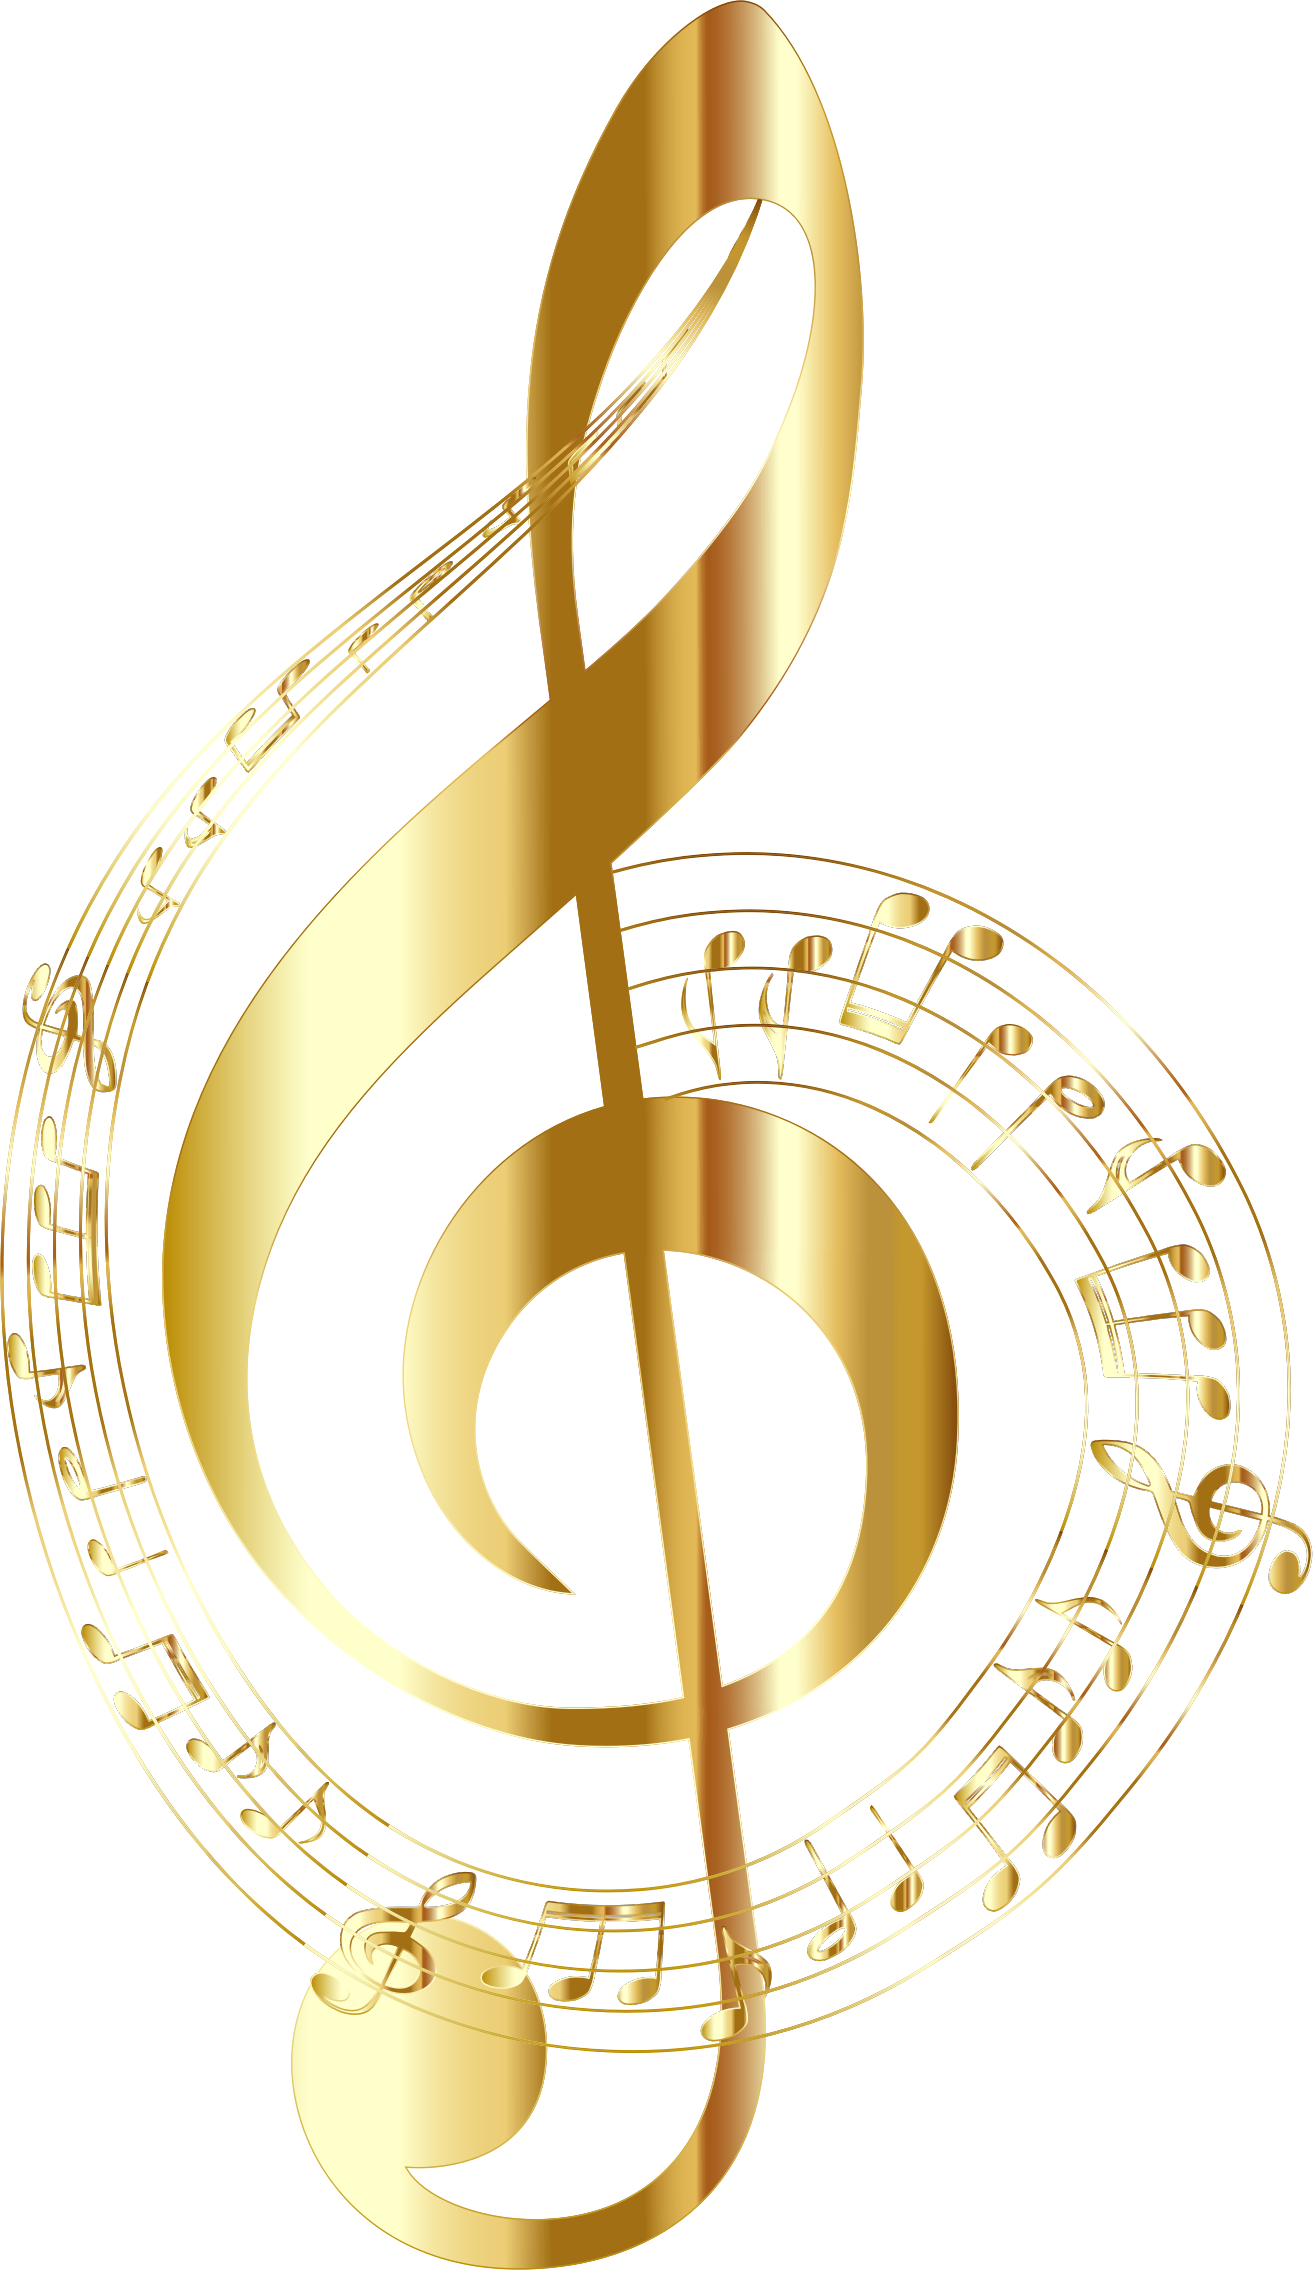 Golden music note png